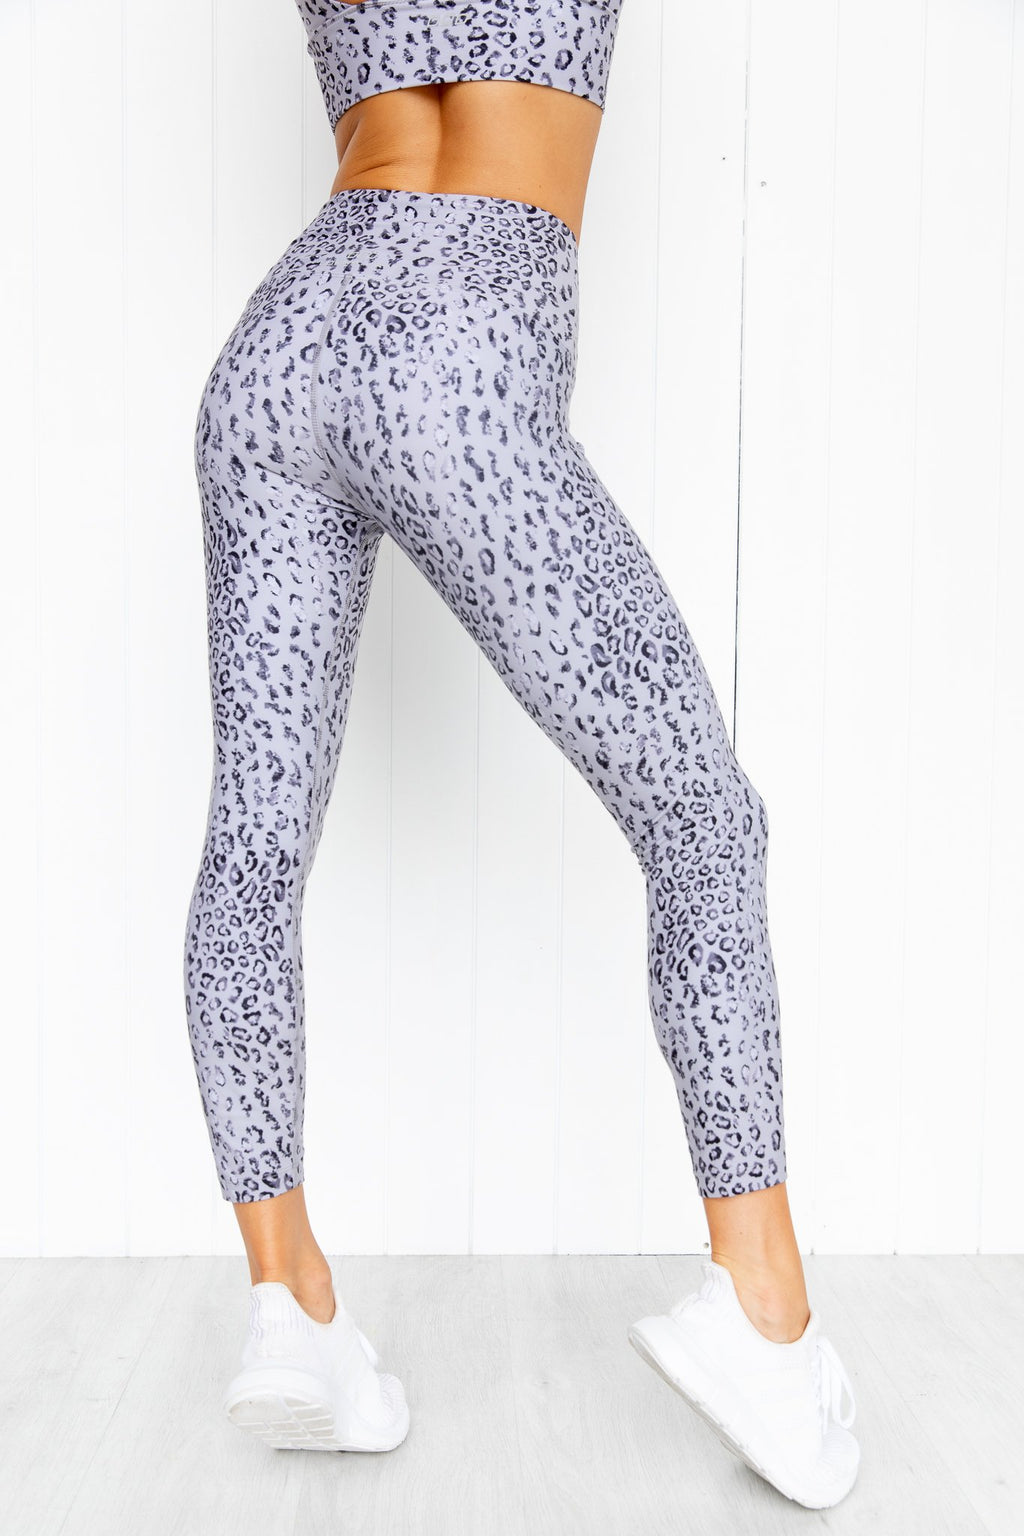 Wild Leopard Ankle Biter Tights - Grey Leopard - PURE DASH